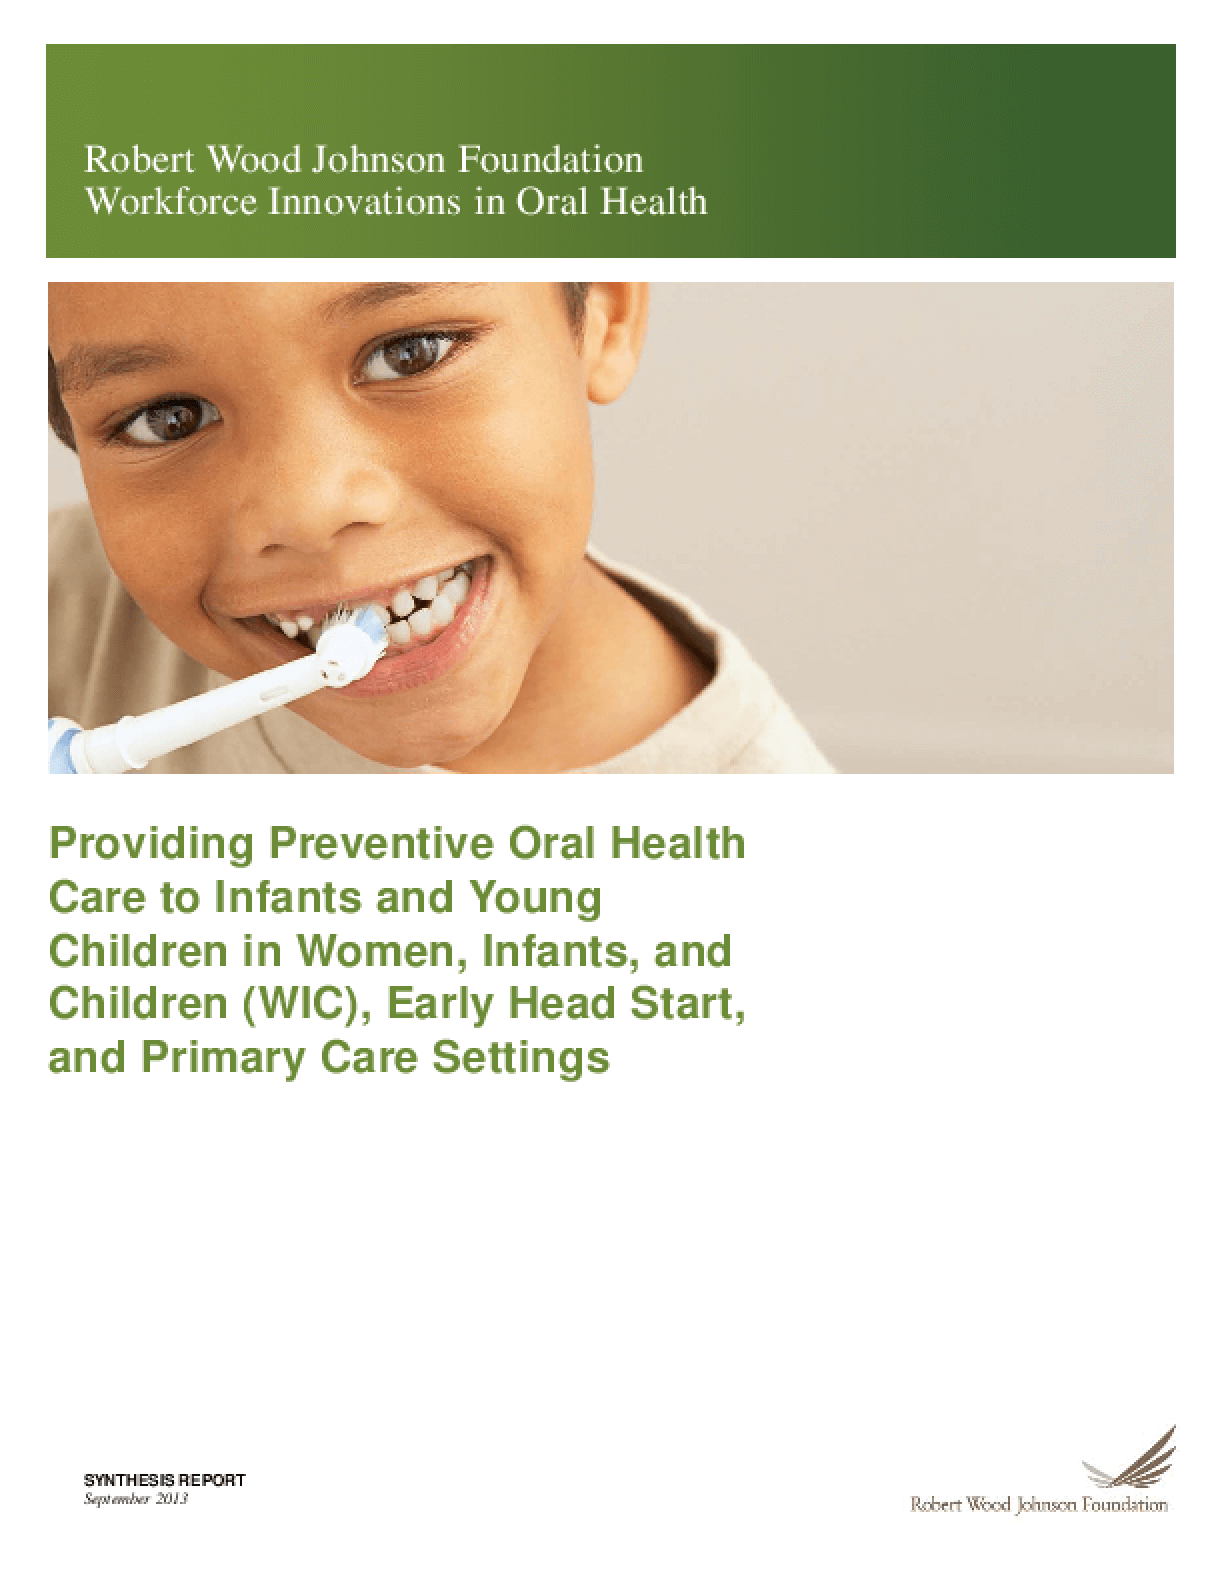 Providing Preventive Oral Health Care to Infants and Young Children in Women, Infants, and Children (WIC), Early Head Start, and Primary Care Settings